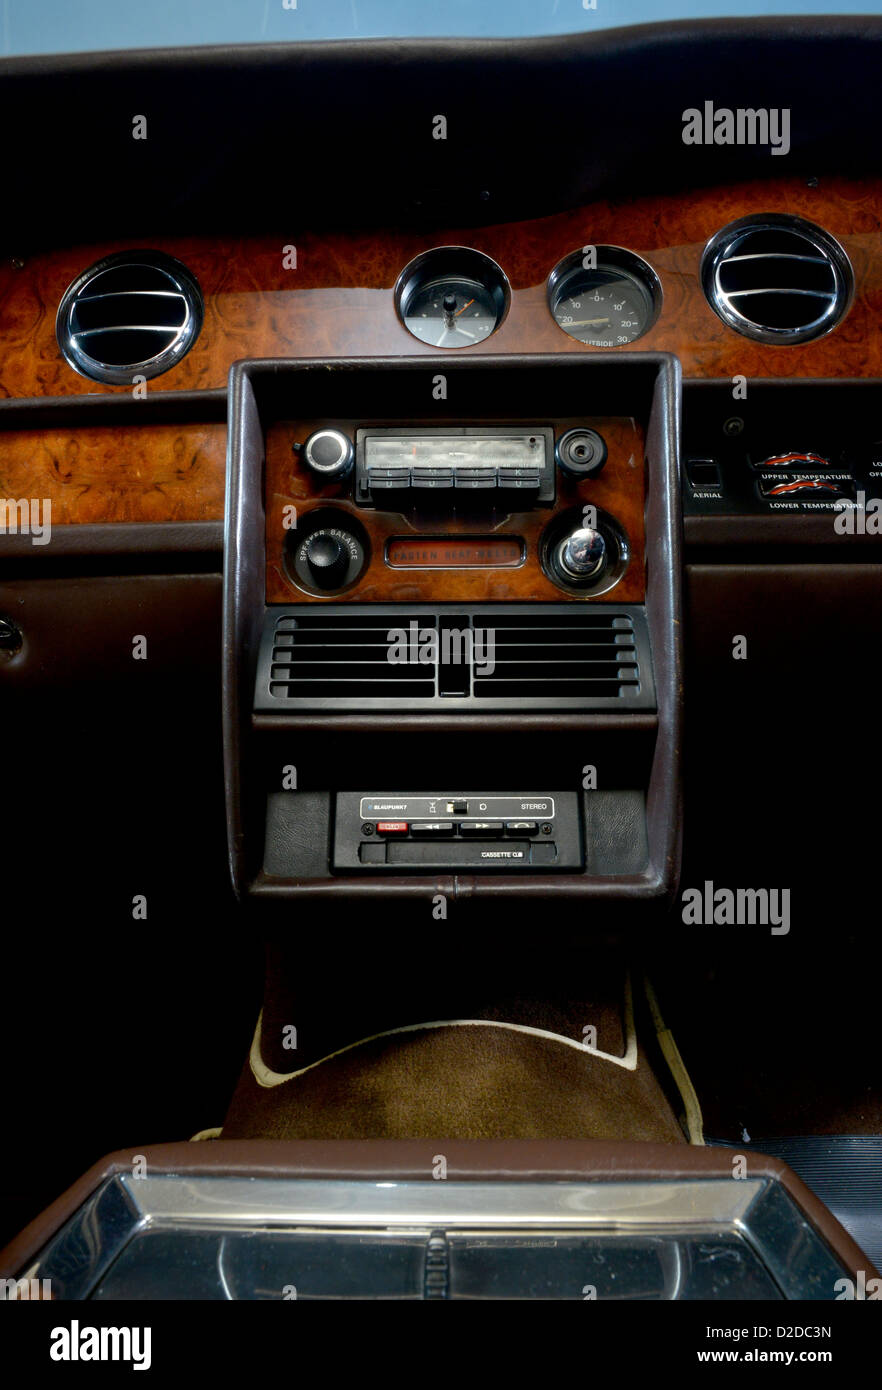 1978 Rolls Royce Silver Shadow II Classic Luxury Car Interior   Stock Image